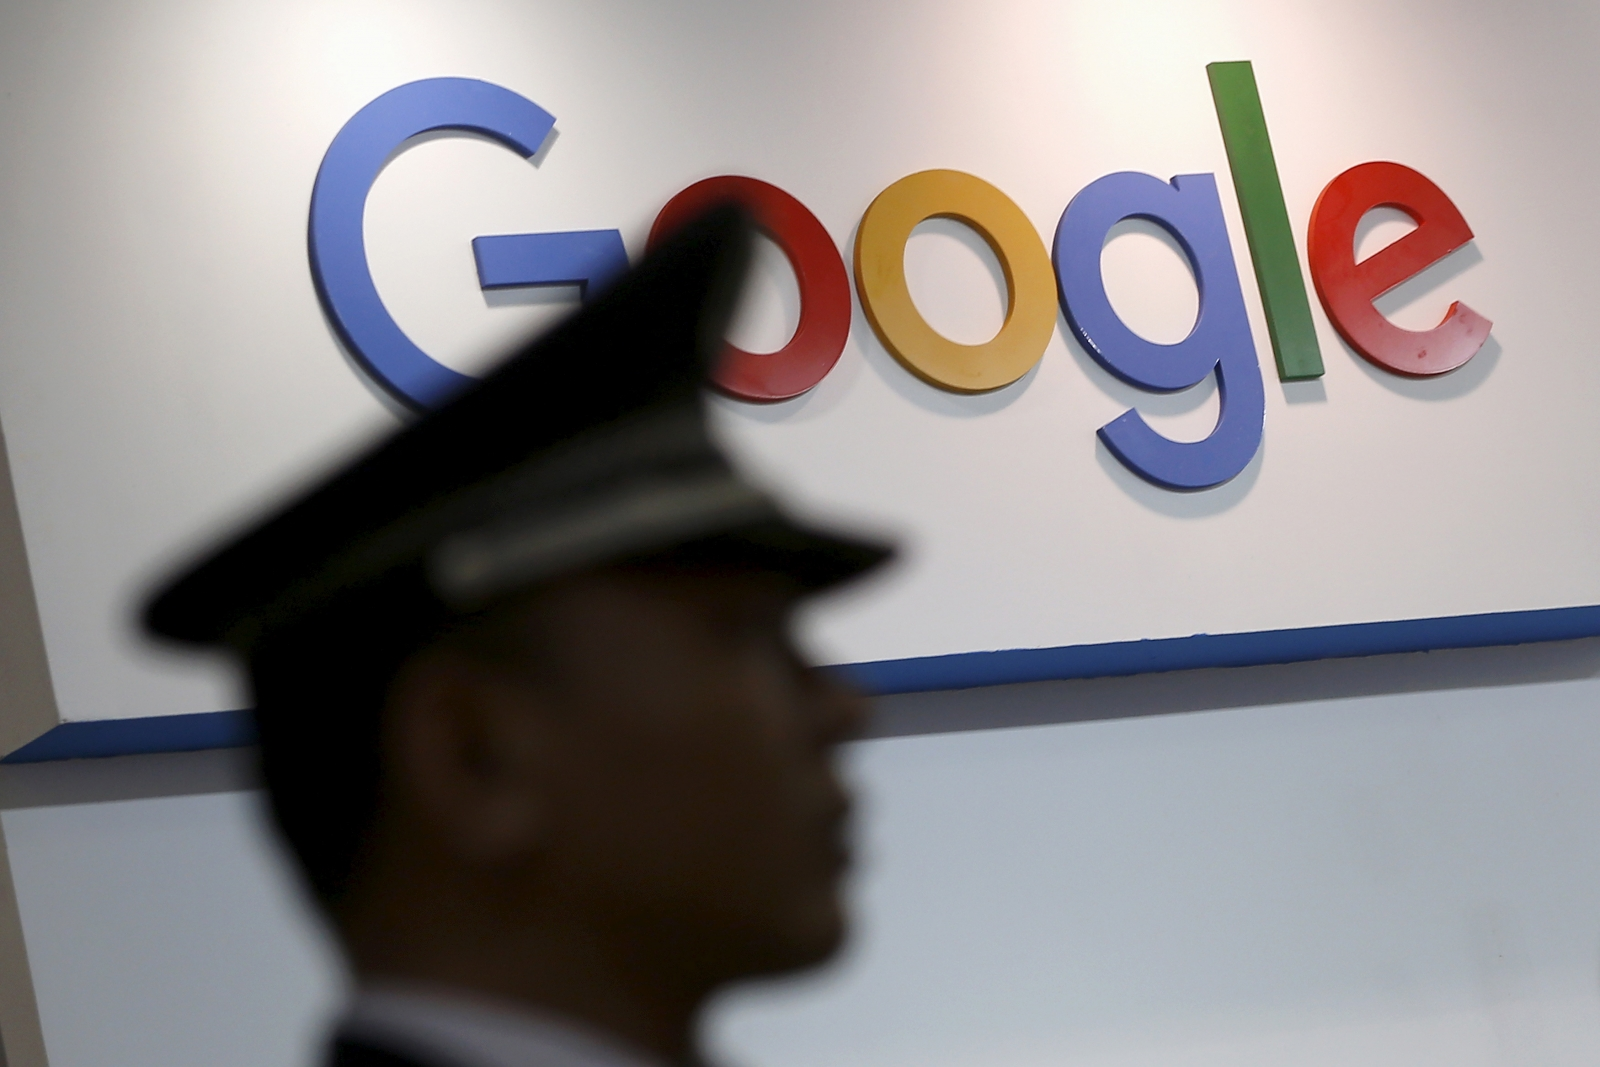 Google Madrid offices raided